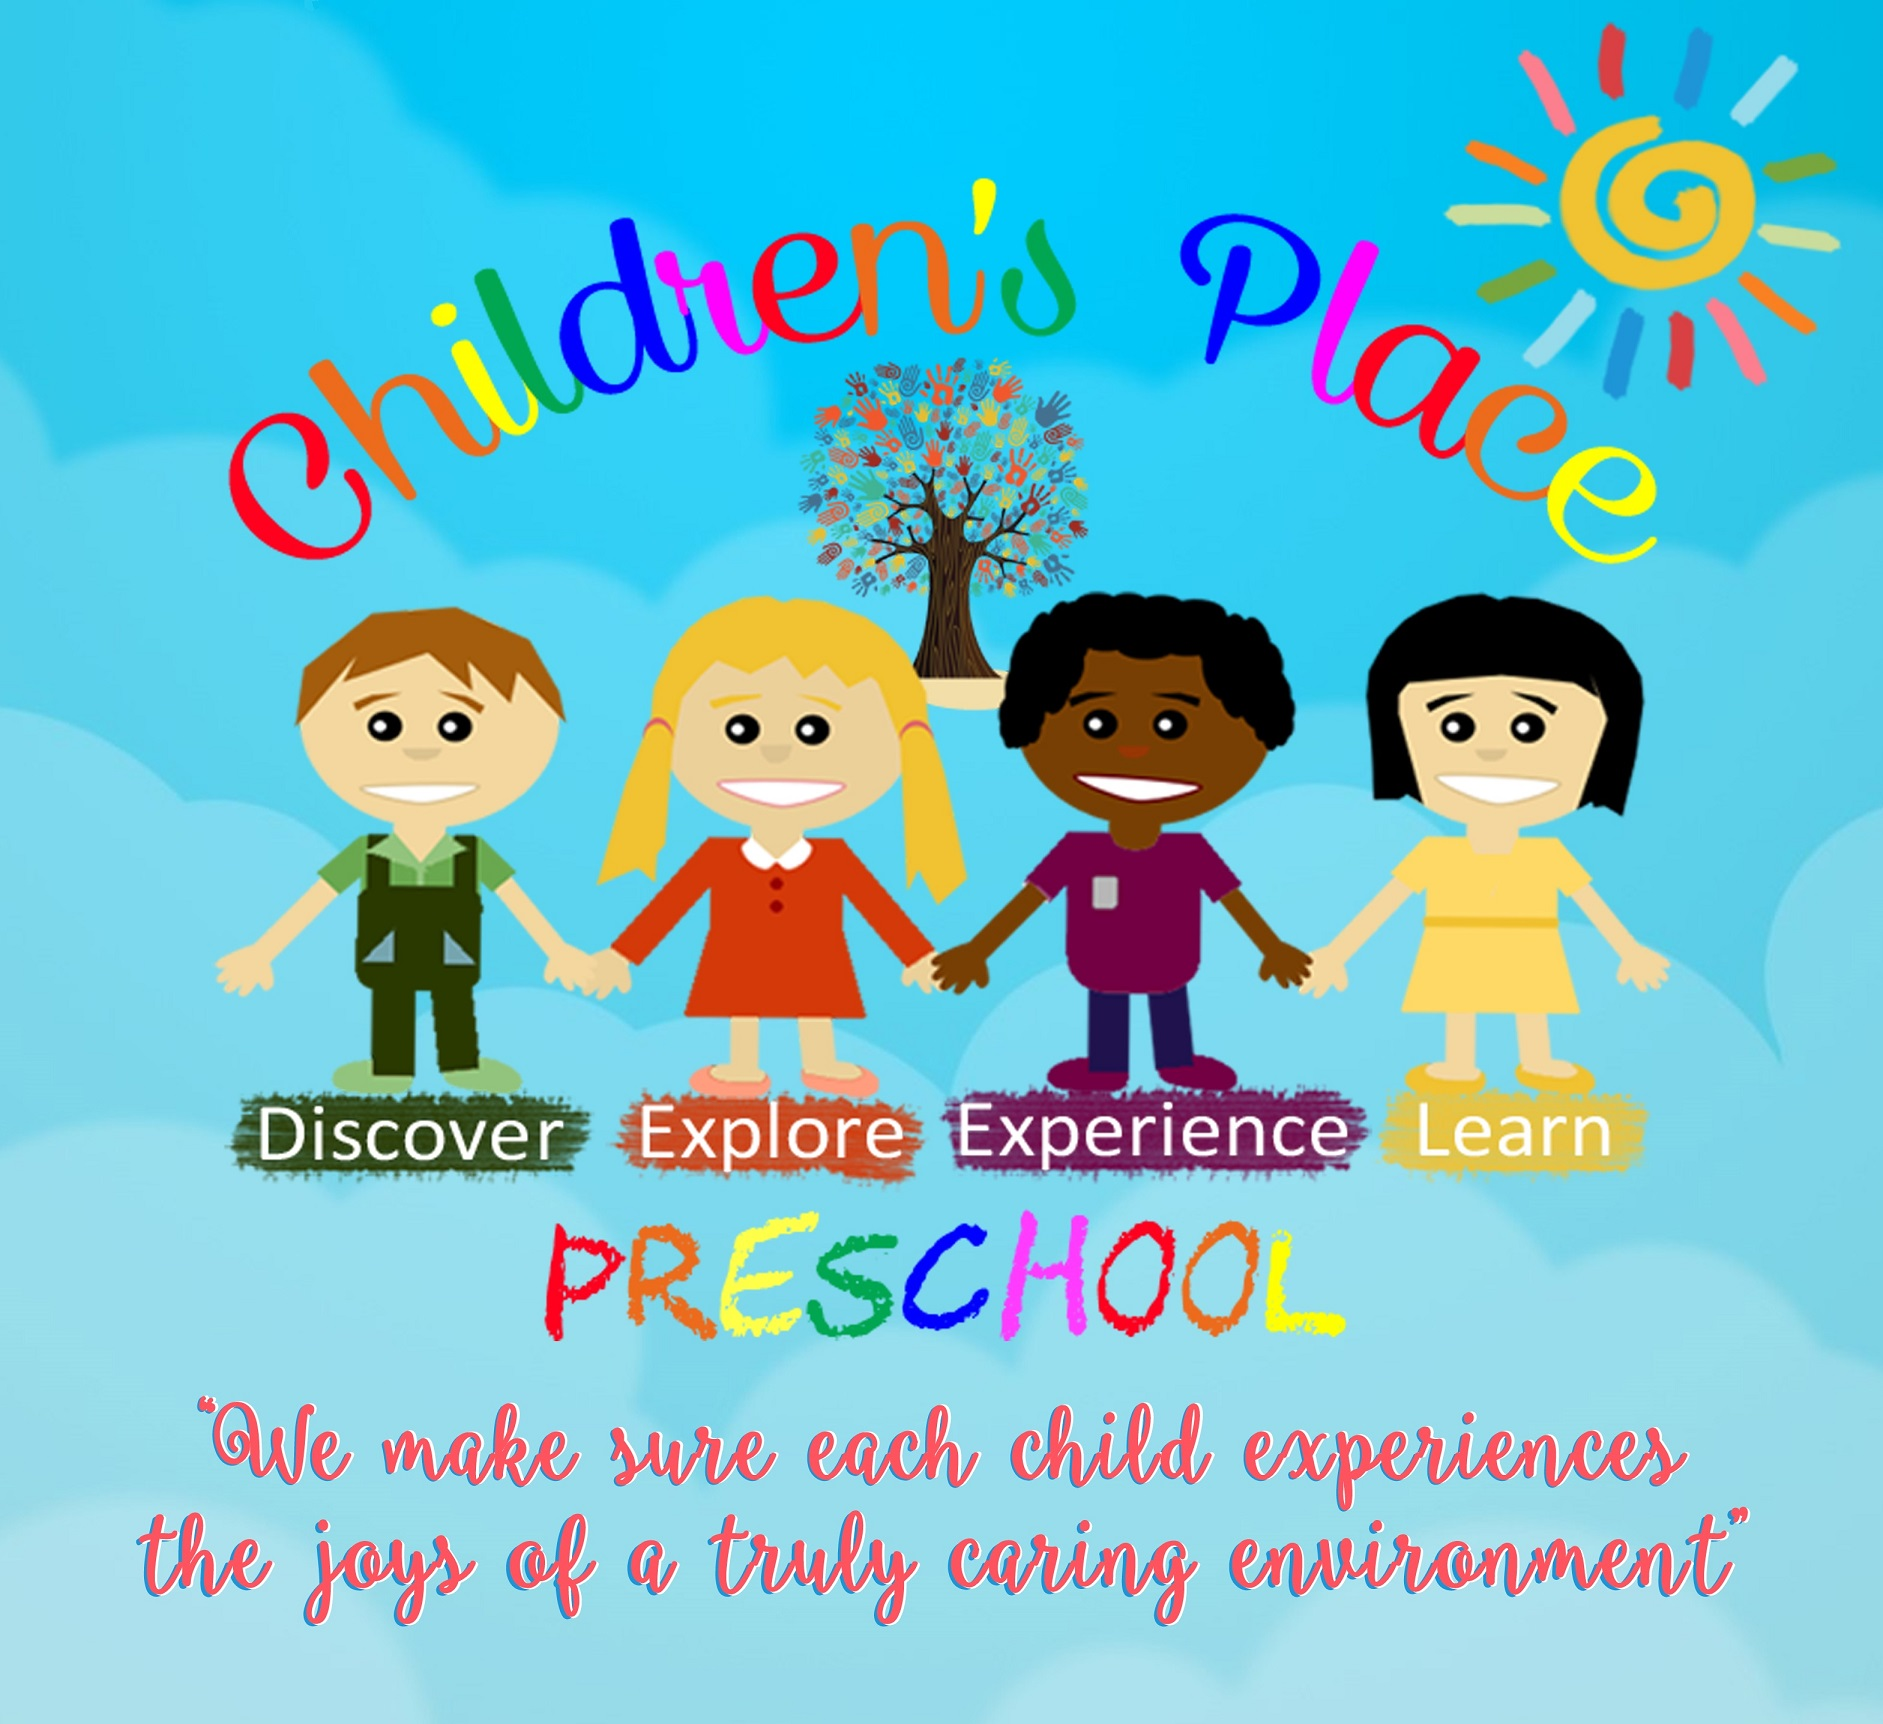 Children's Place Preschool